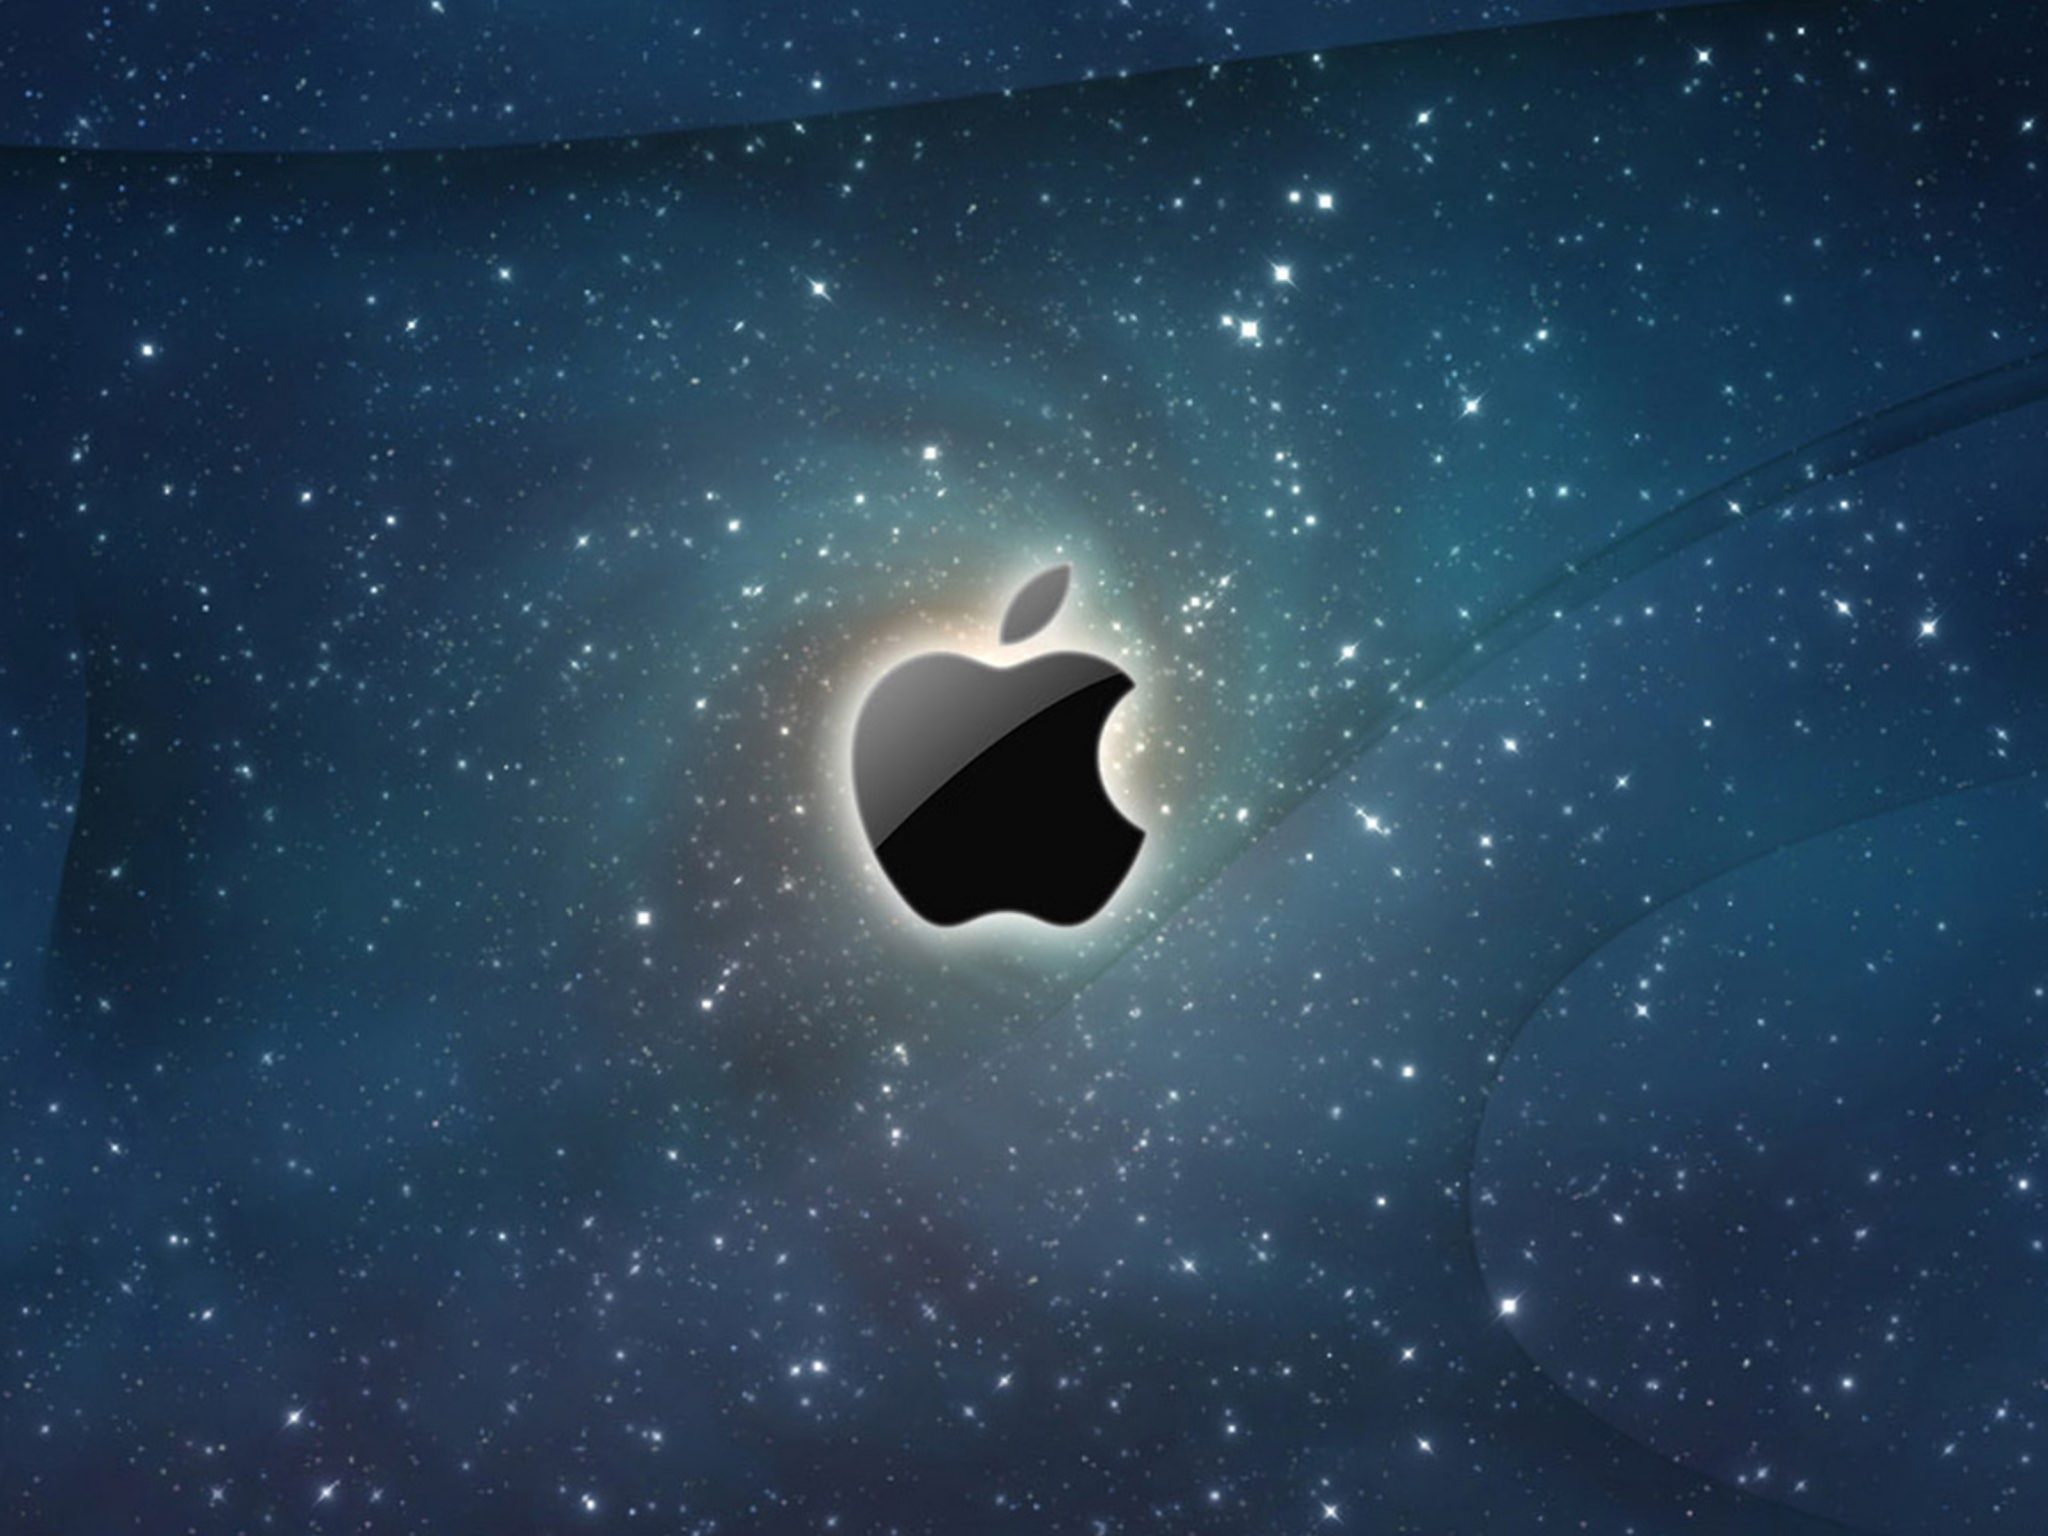 2048x1536 wallpaper Apple Space Ipad Wallpaper 2048x1536 pixels resolution